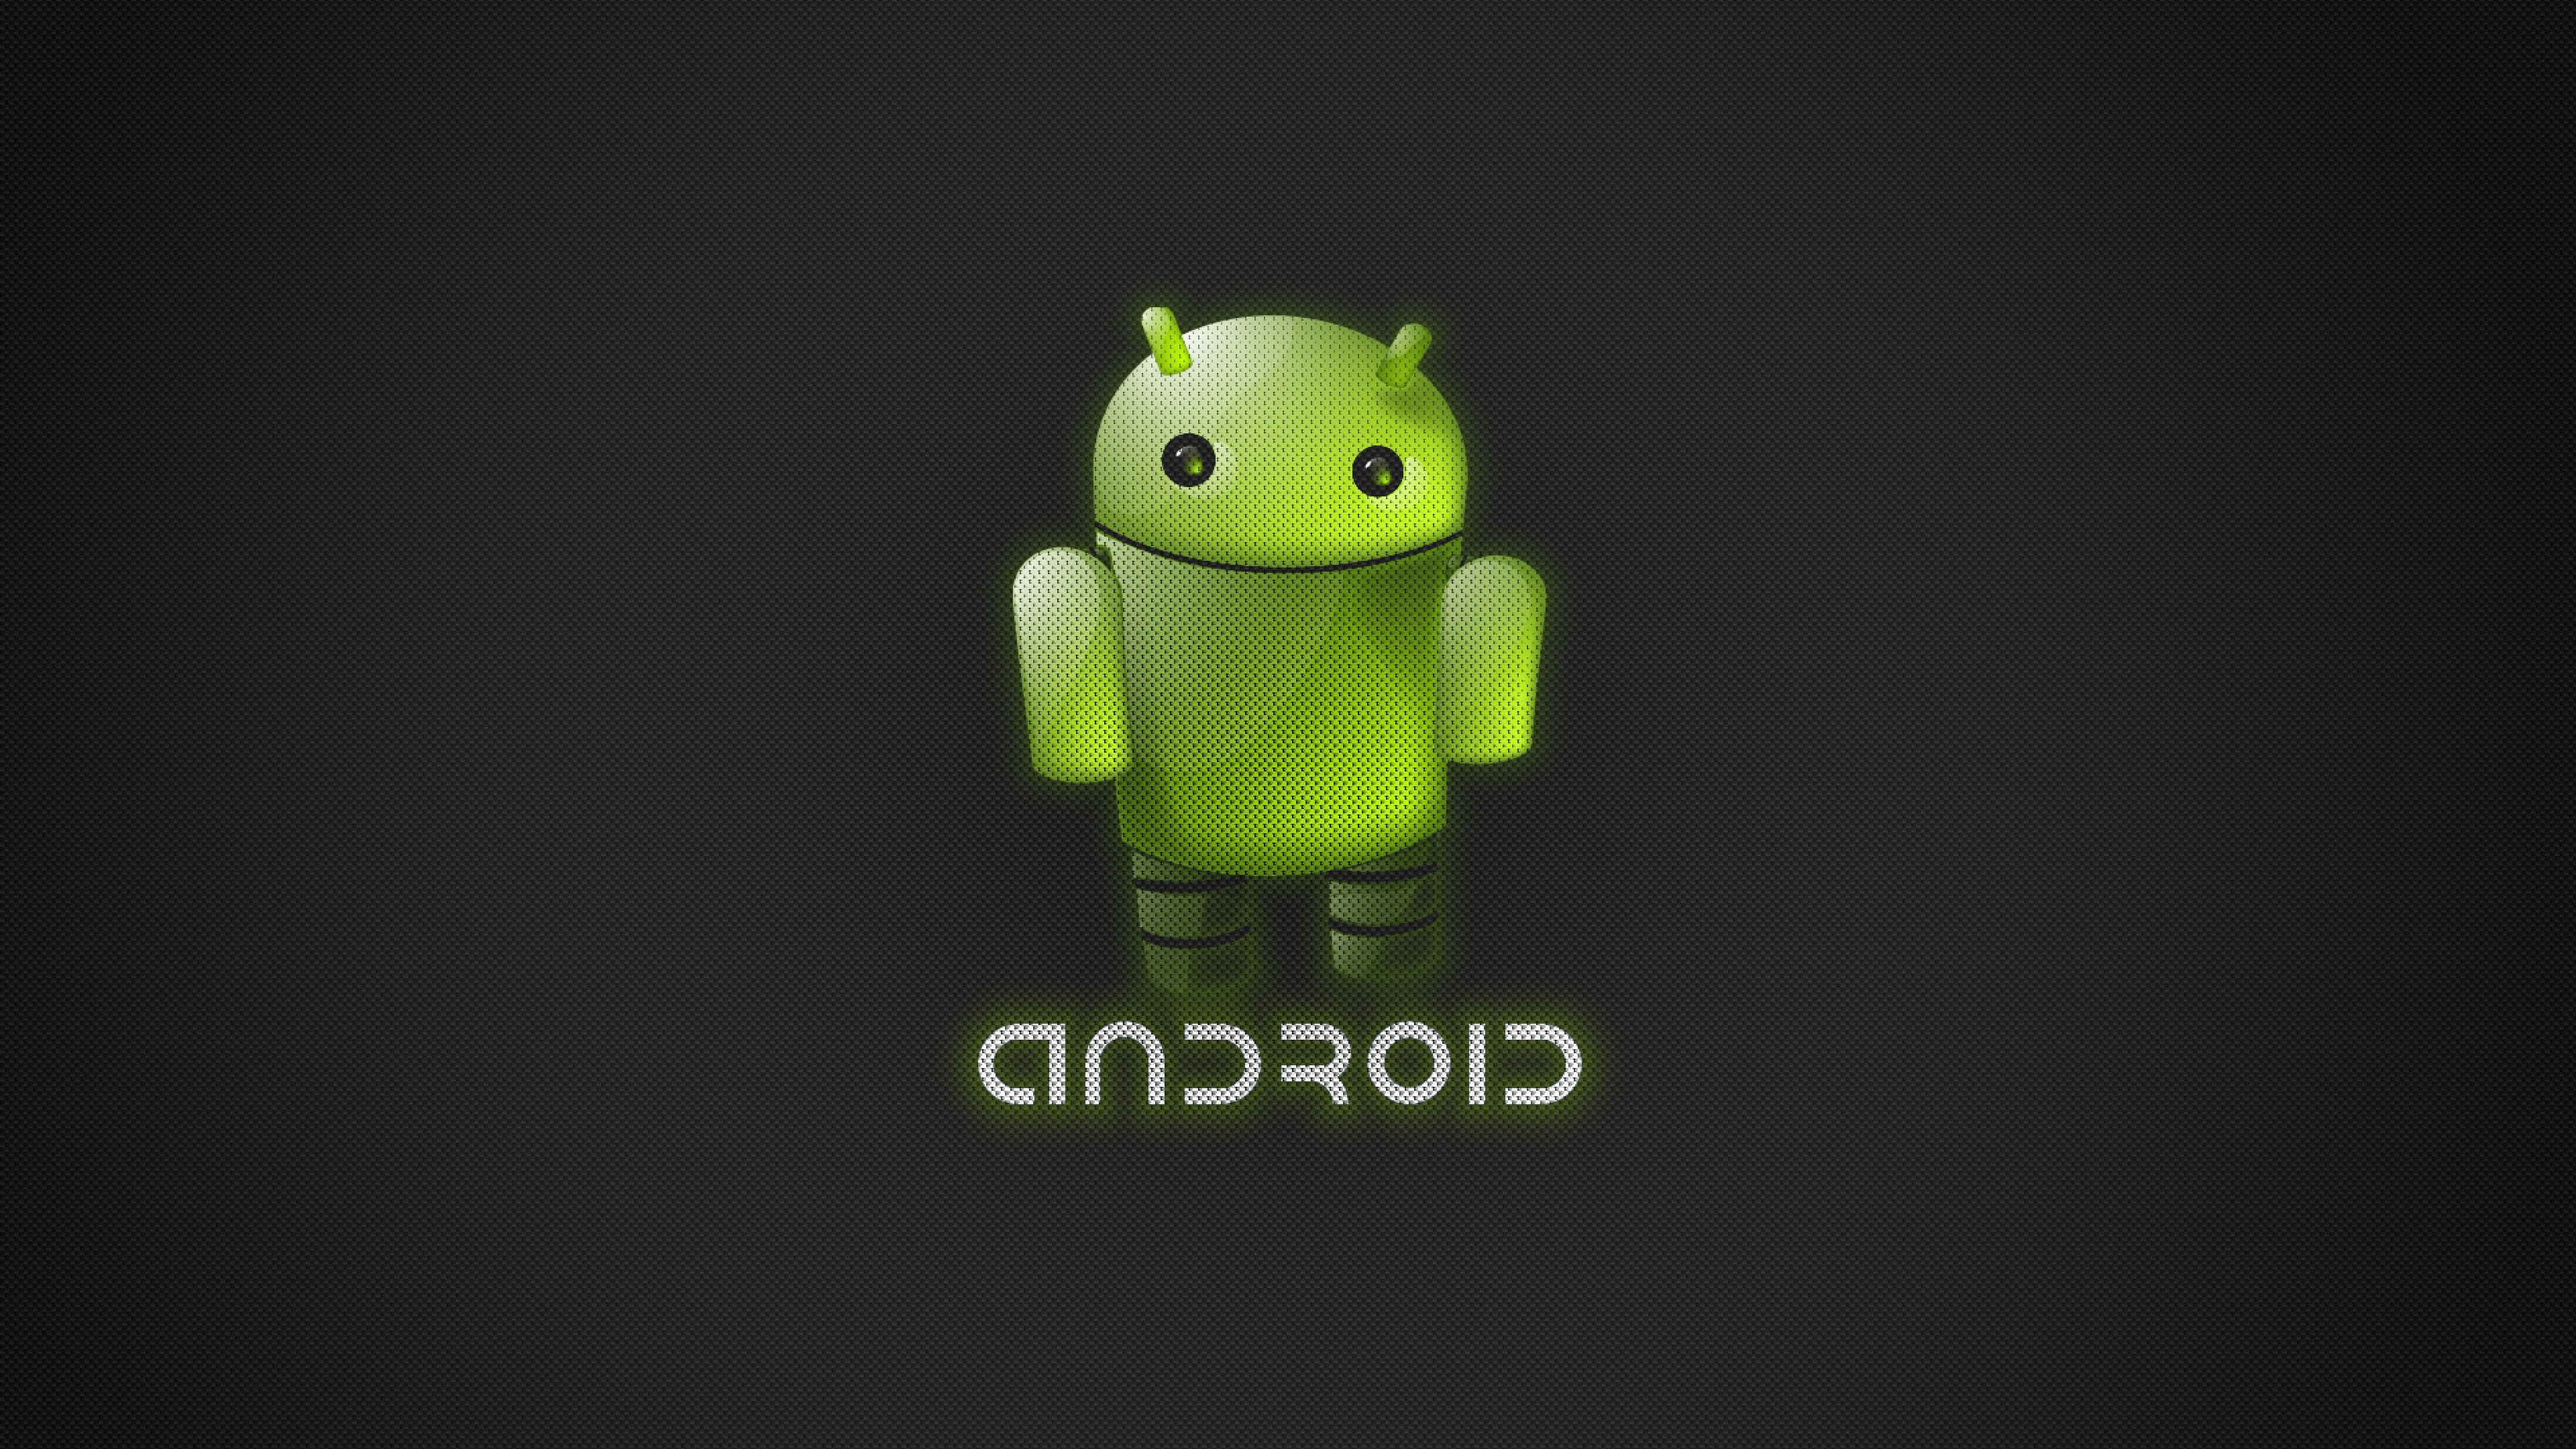 wallpaper 3840x2160 robot green android 4k ultra hd hd background